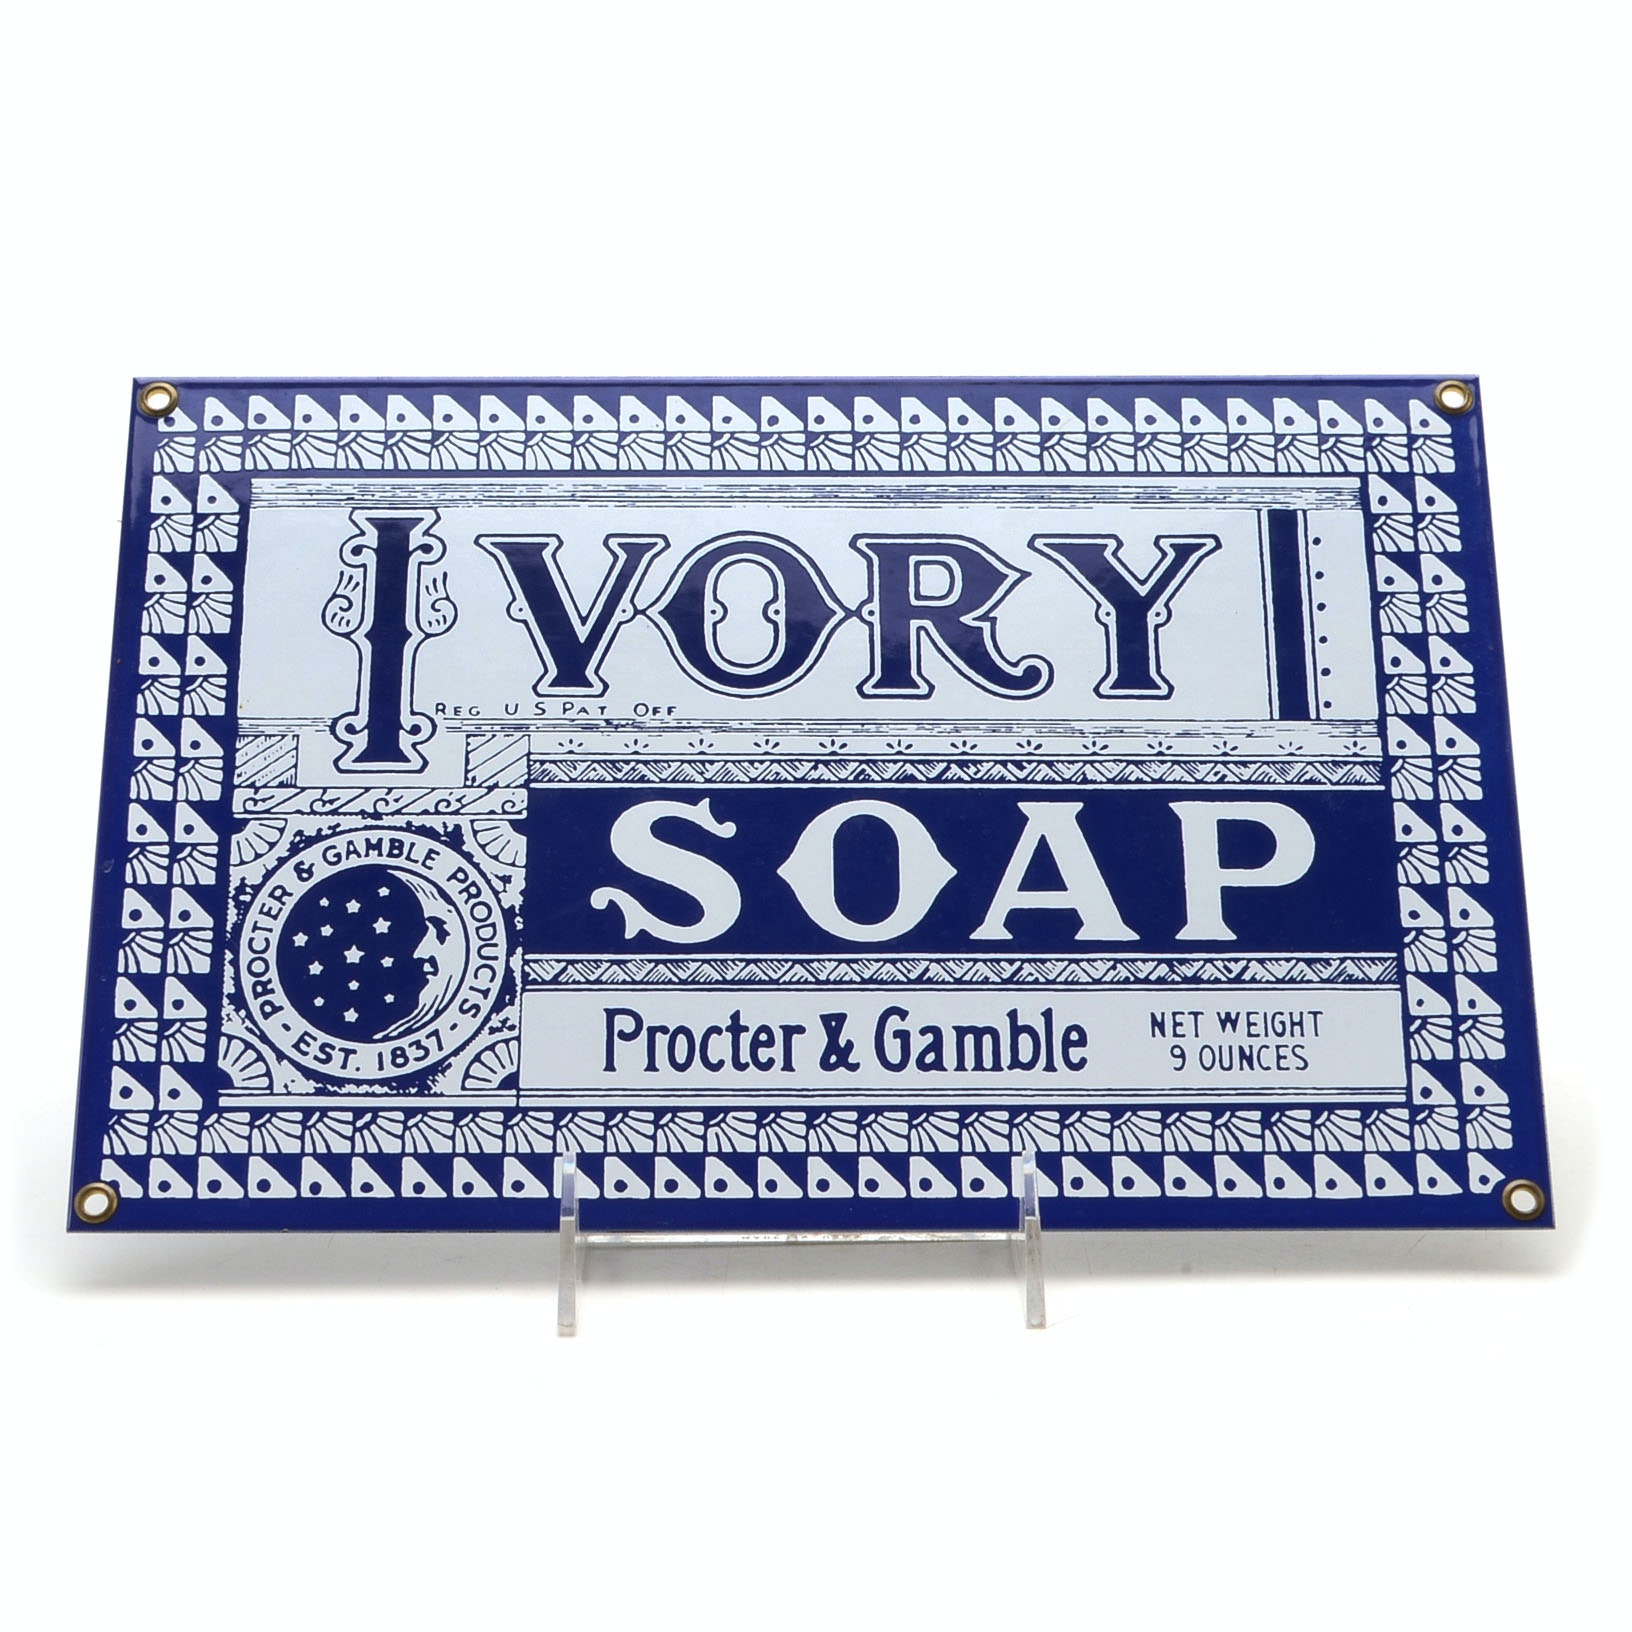 Procter & Gamble Ivory Soap Enameled Metal Sign